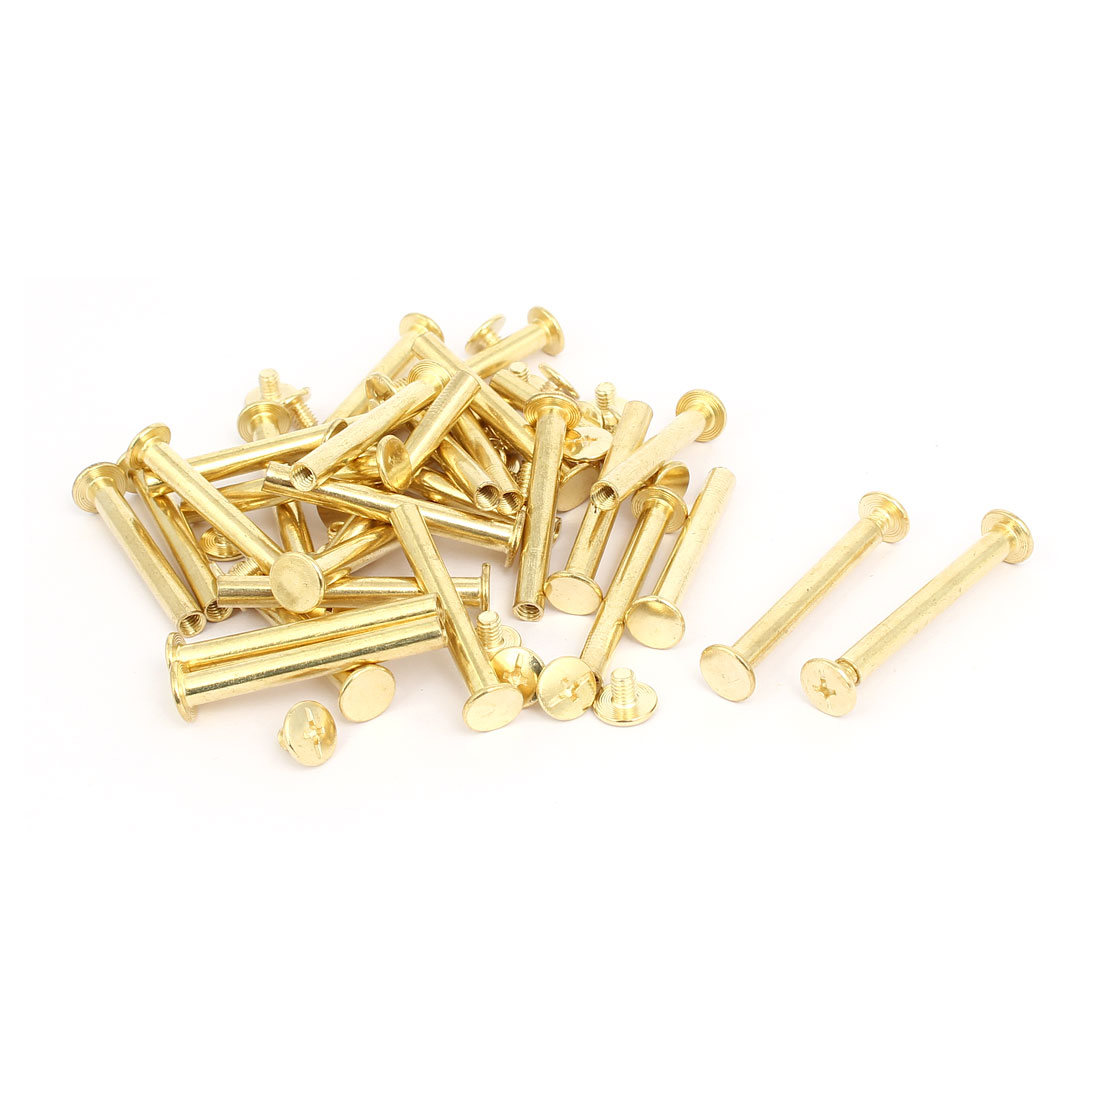 M5x40mm Binding Screw Post Gold Tone 30pcs for Photo Albums Scrapbook